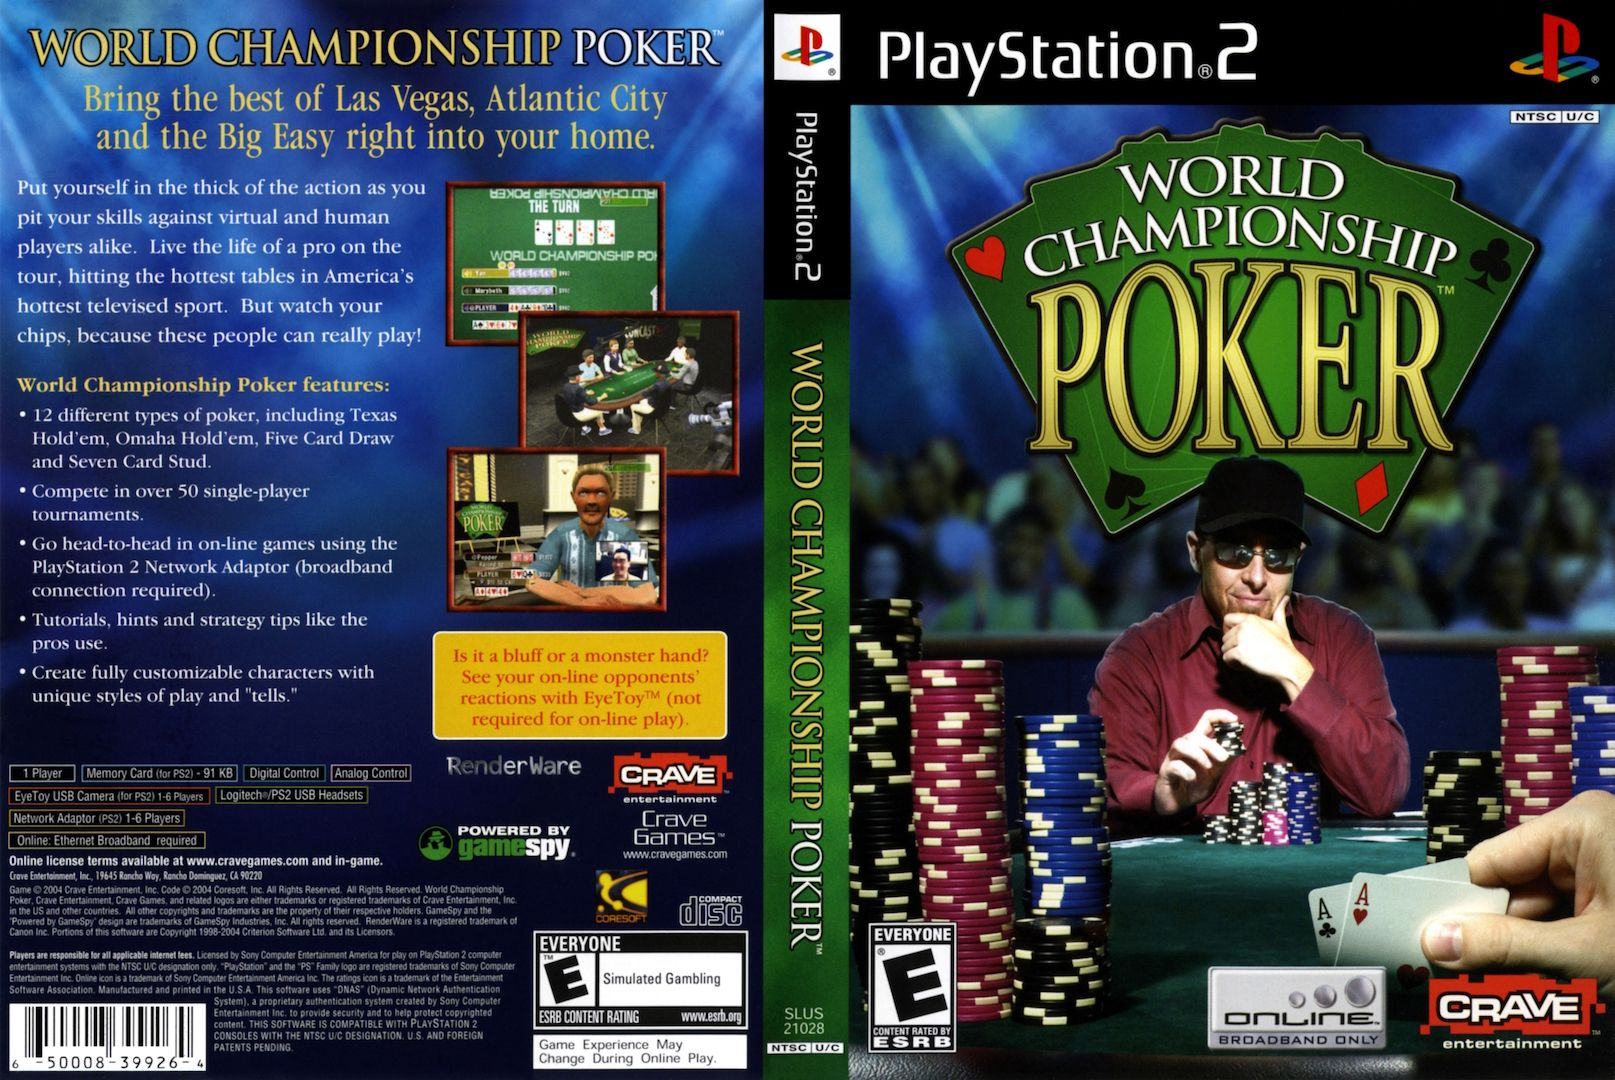 Pin by J.E. Michaud on VIDEO GAMES I'VE PLAYED Poker